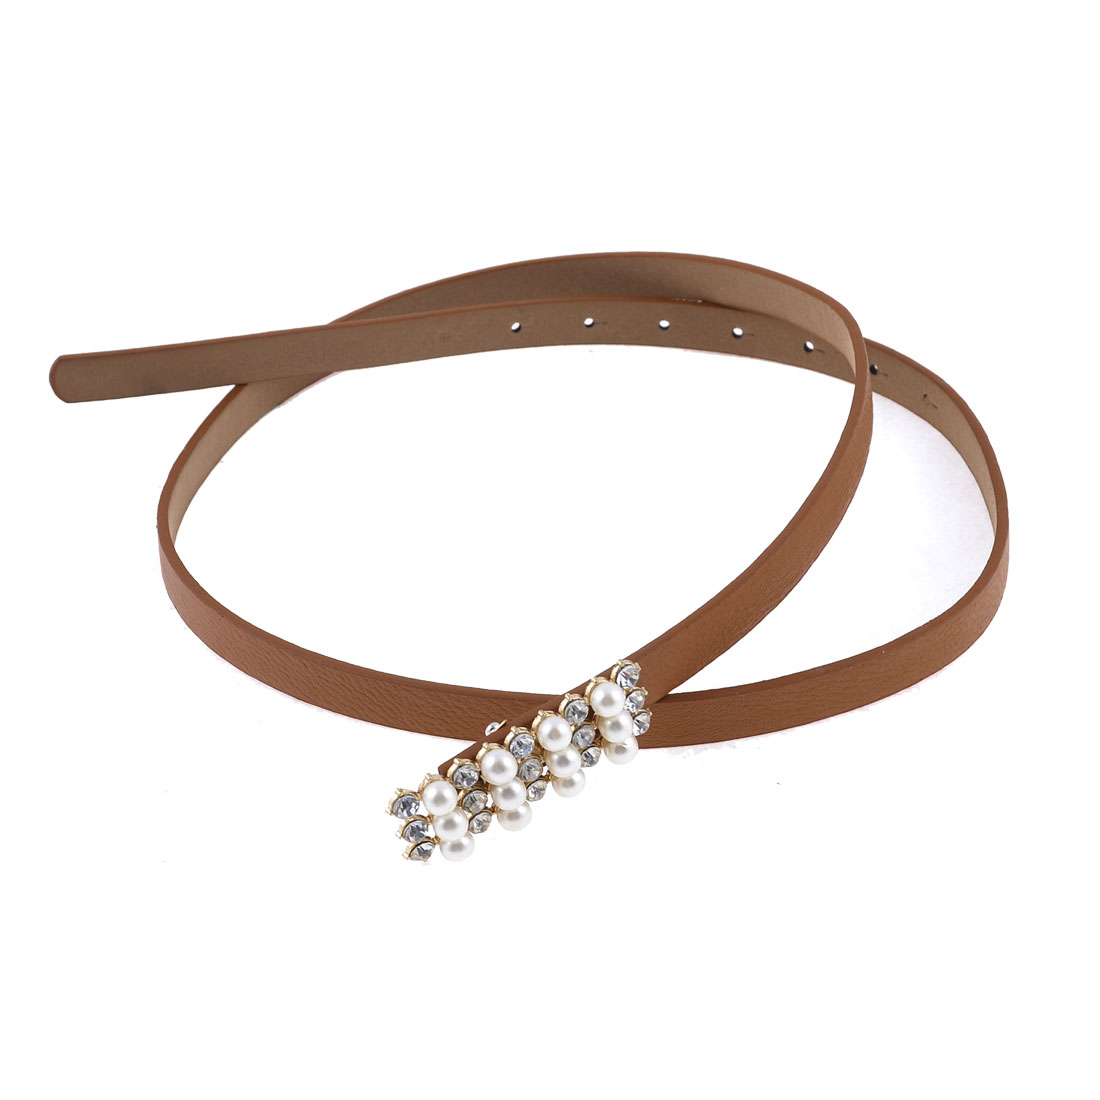 Women Plastic Rhinestone Decor Interlocking Buckle Slender Waist Belt Brown